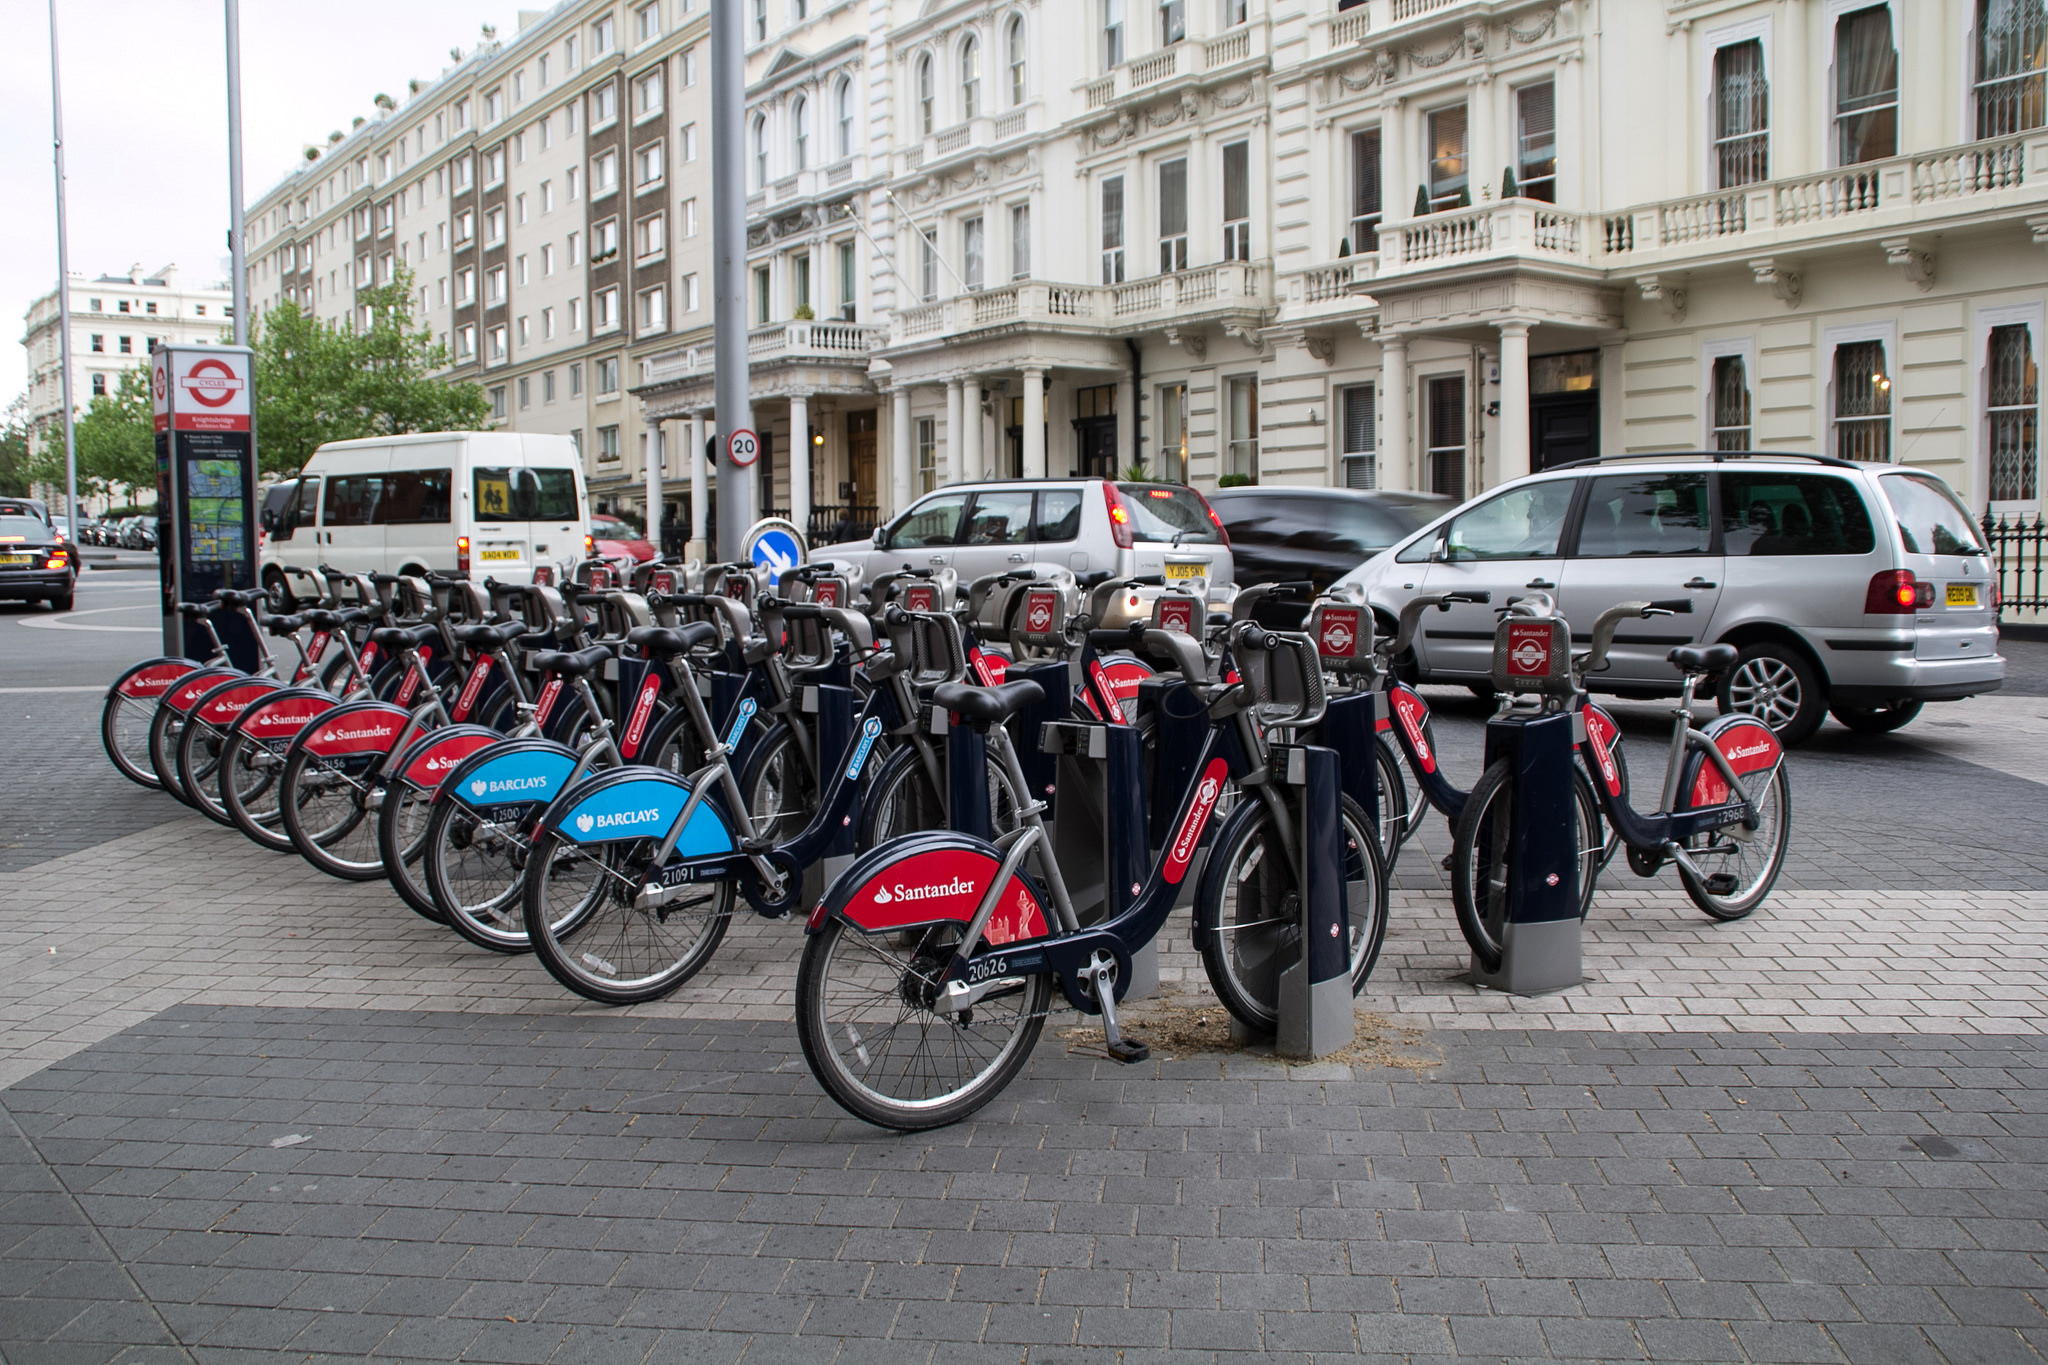 Rent bicycles in London